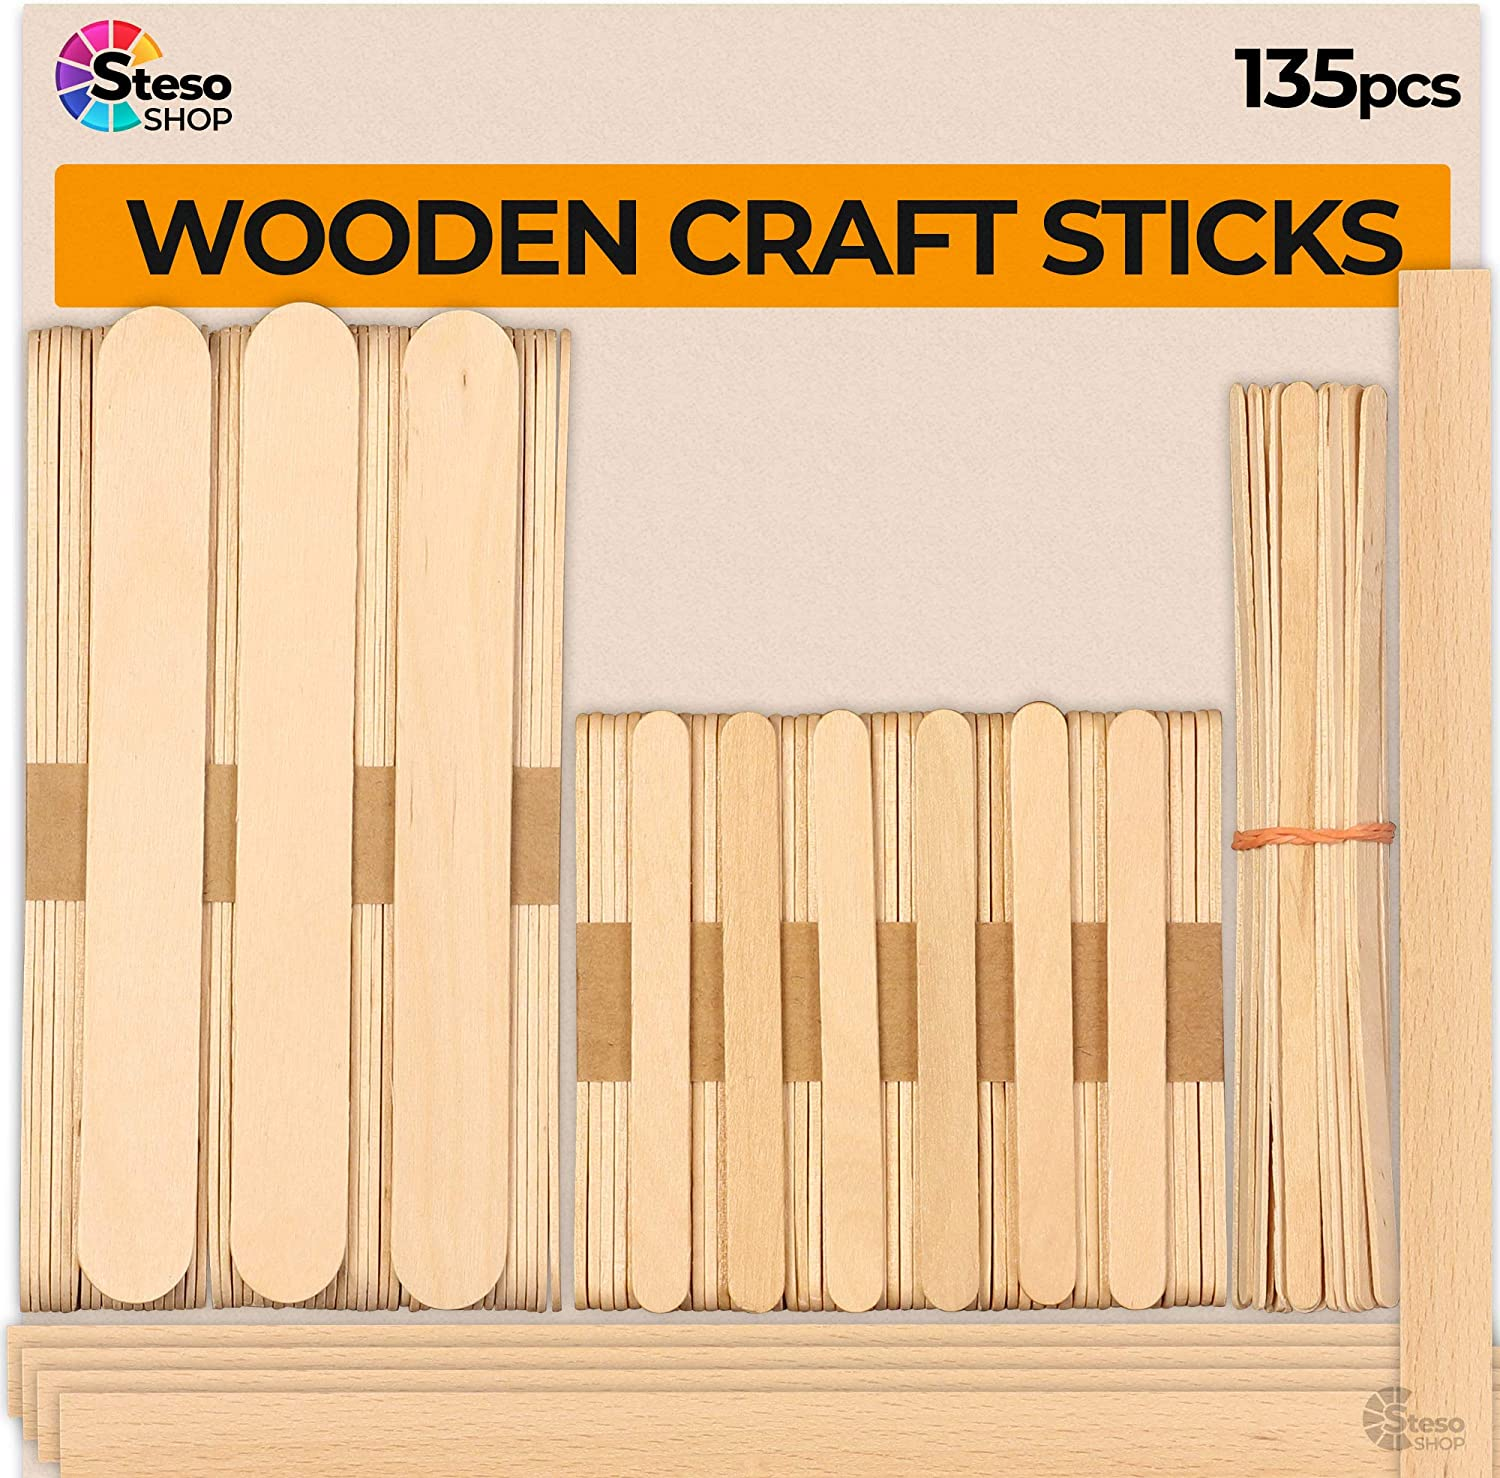 StesoSHOP Popsicle Stick – Jumbo Craft Sticks - Mixed Sizes Different Natural Wood Popsicle Sticks - Durable Wood Stick Bulk Food Grade Wax Paint Stir Sticks - Wood Strips - More Fun Craft Kids Adult